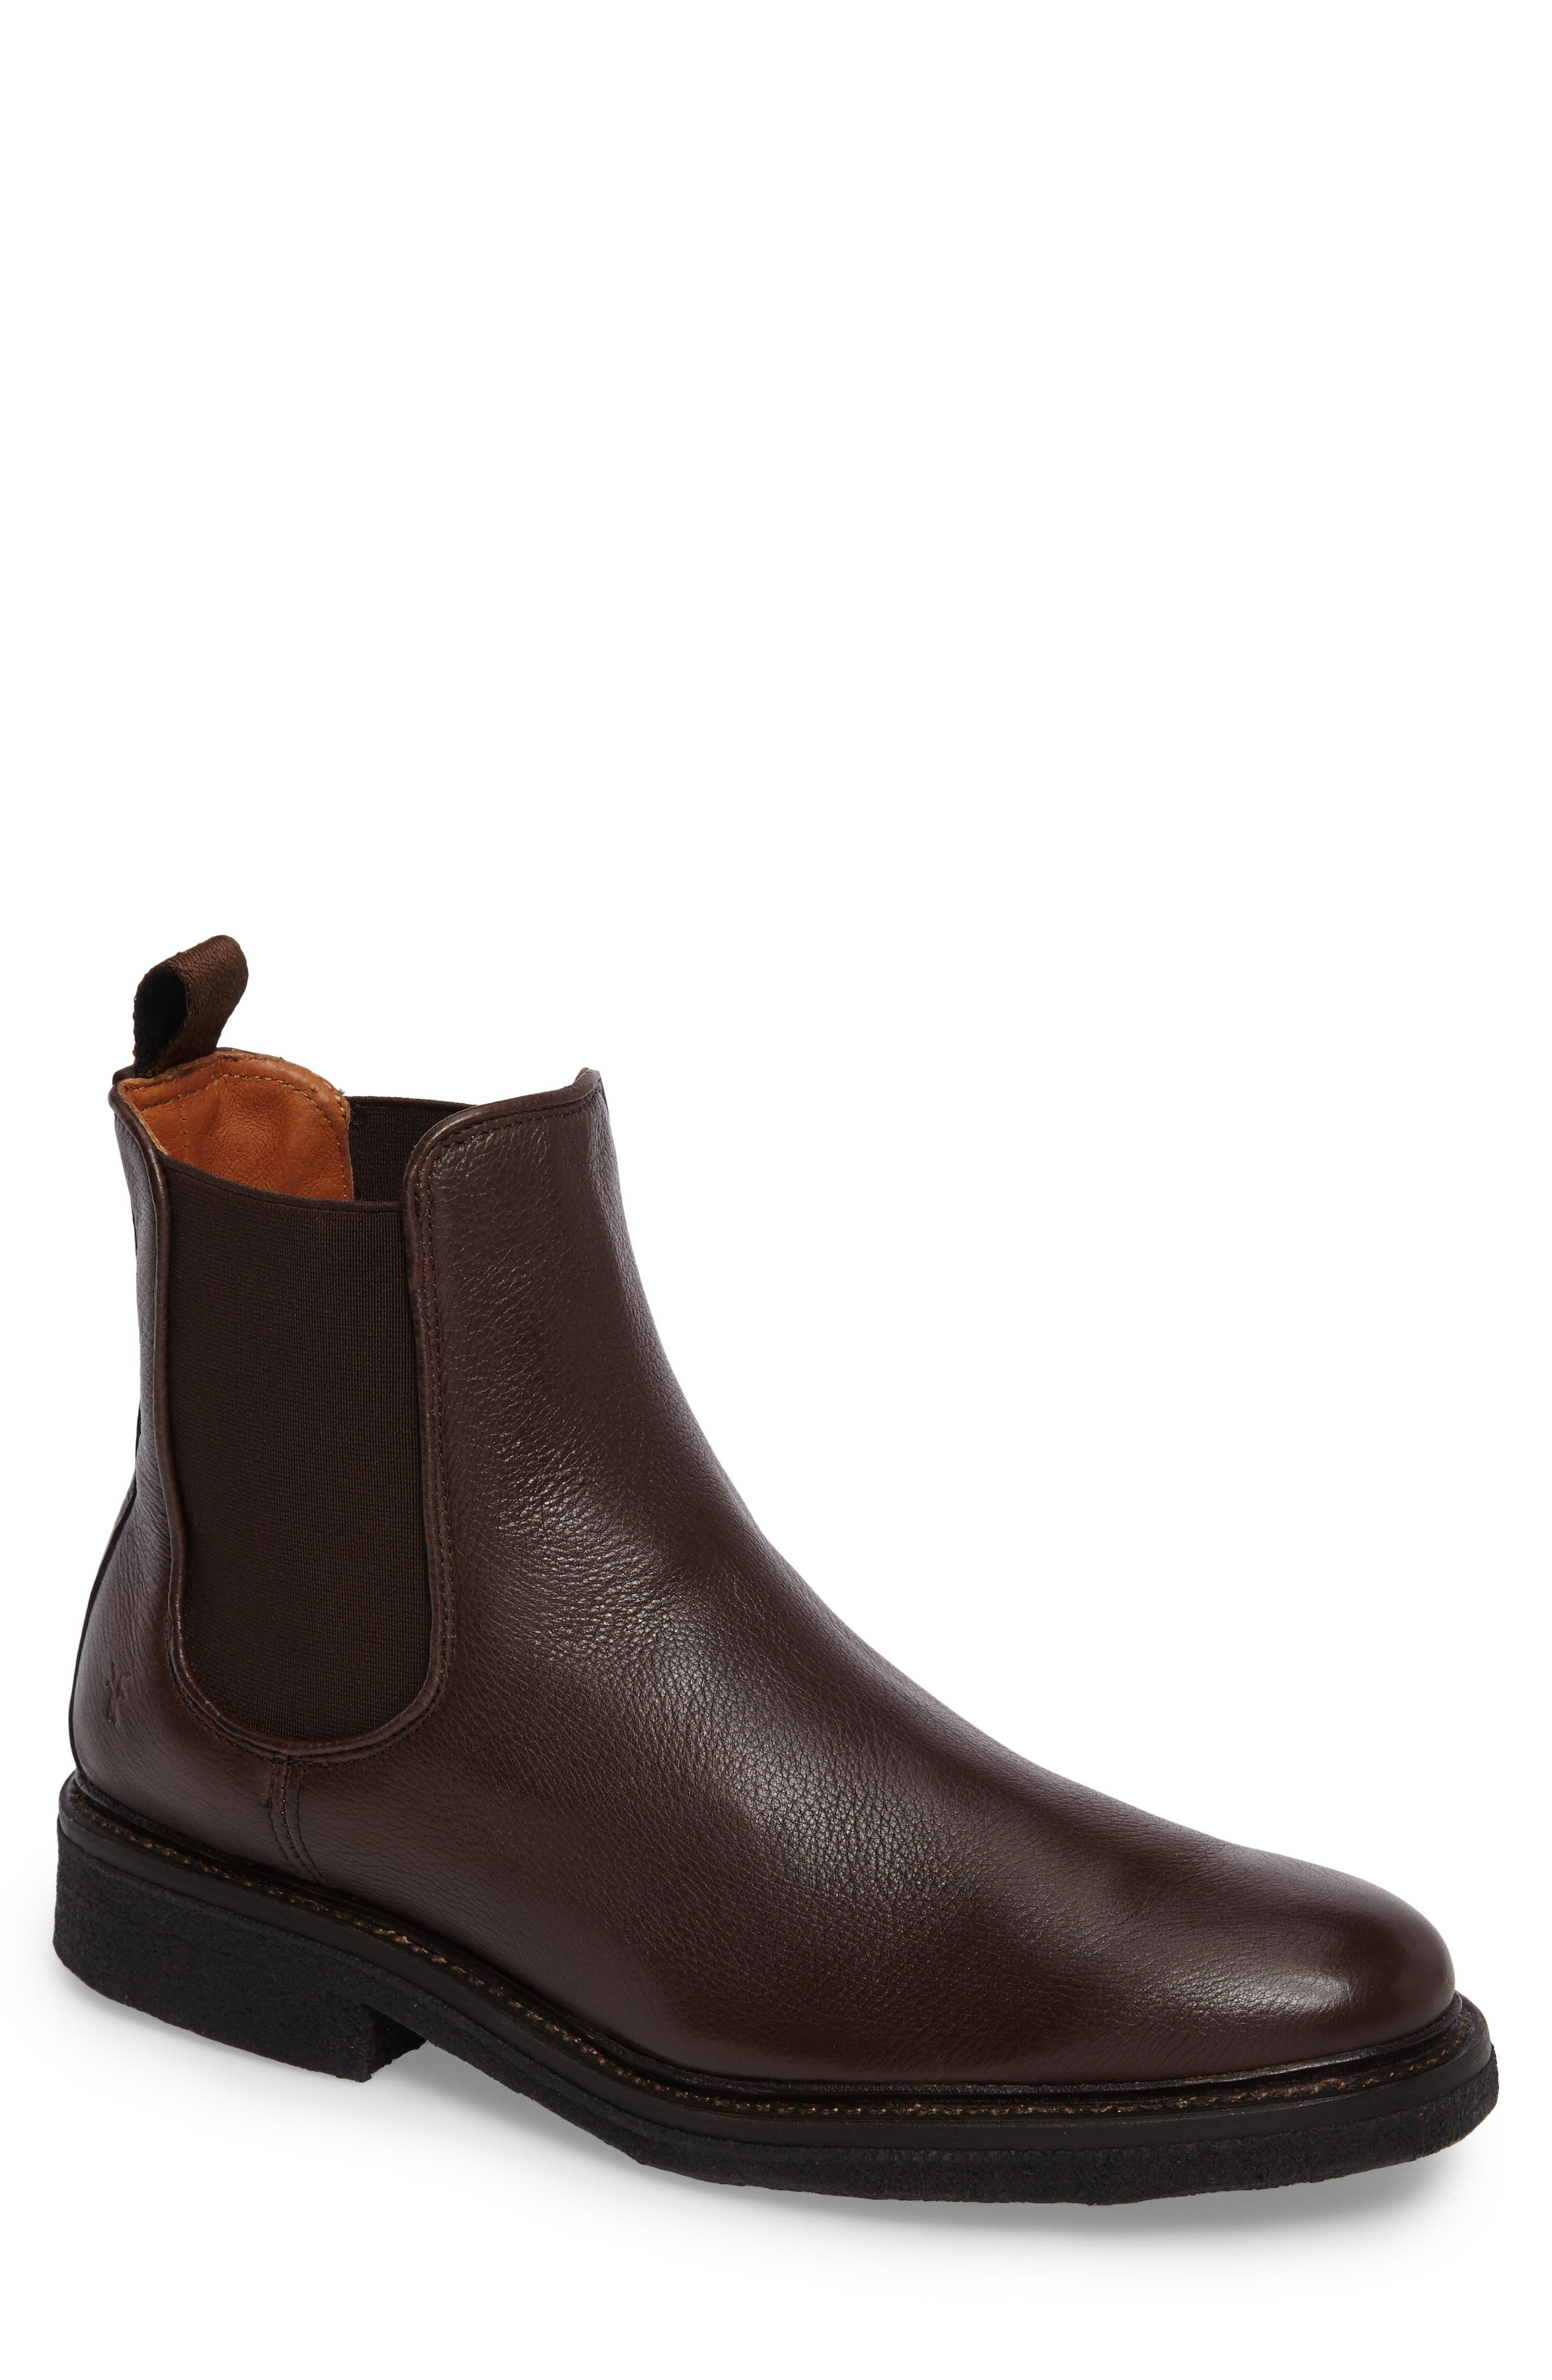 Country Chelsea Boot,                         Main,                         color, 200